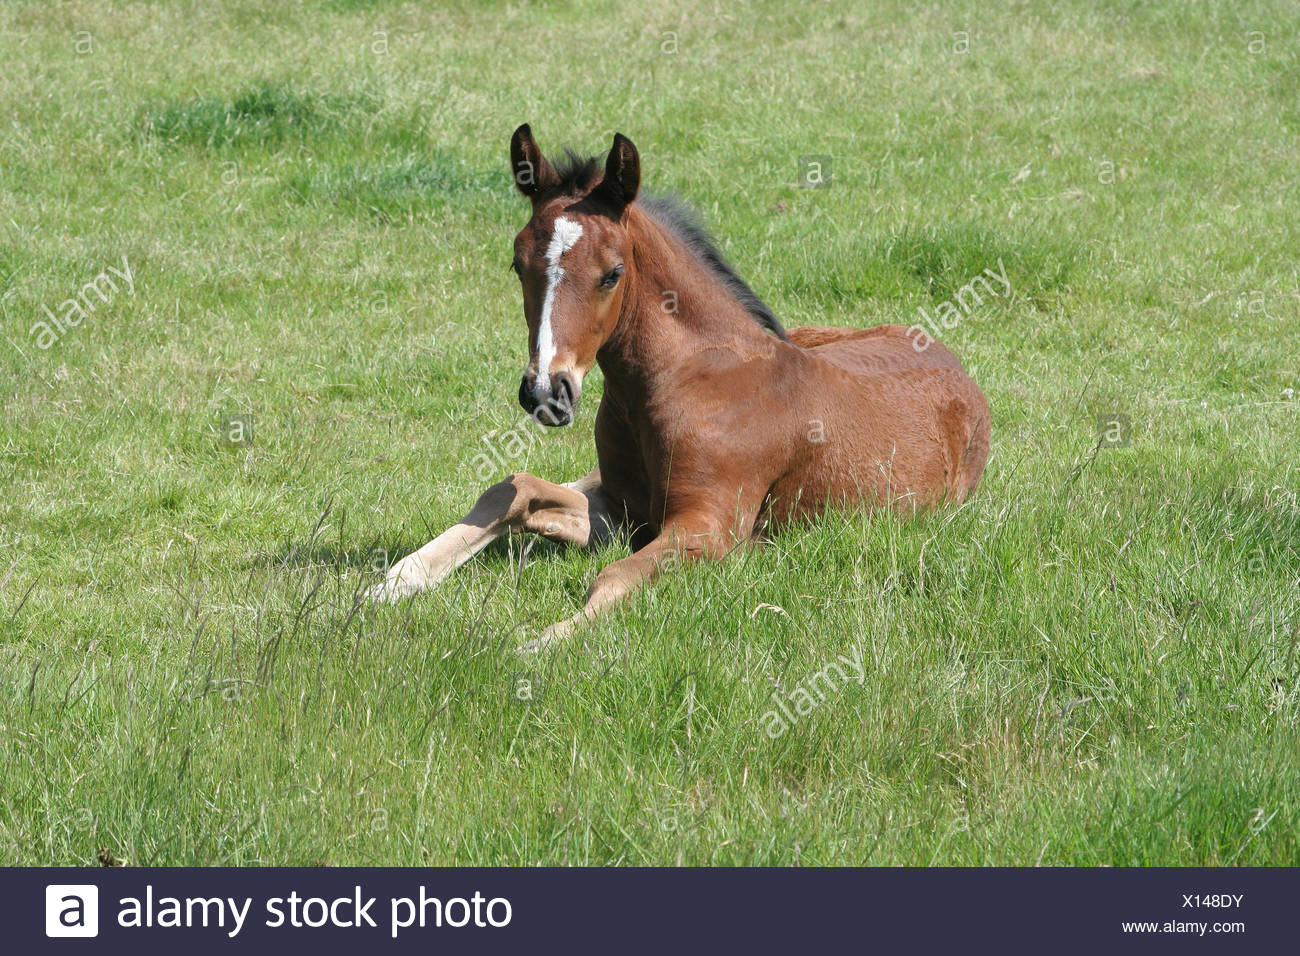 Horse Cub Baby Foal Young Younger Horse Pet Brown Brownish Brunette Stock Photo Alamy